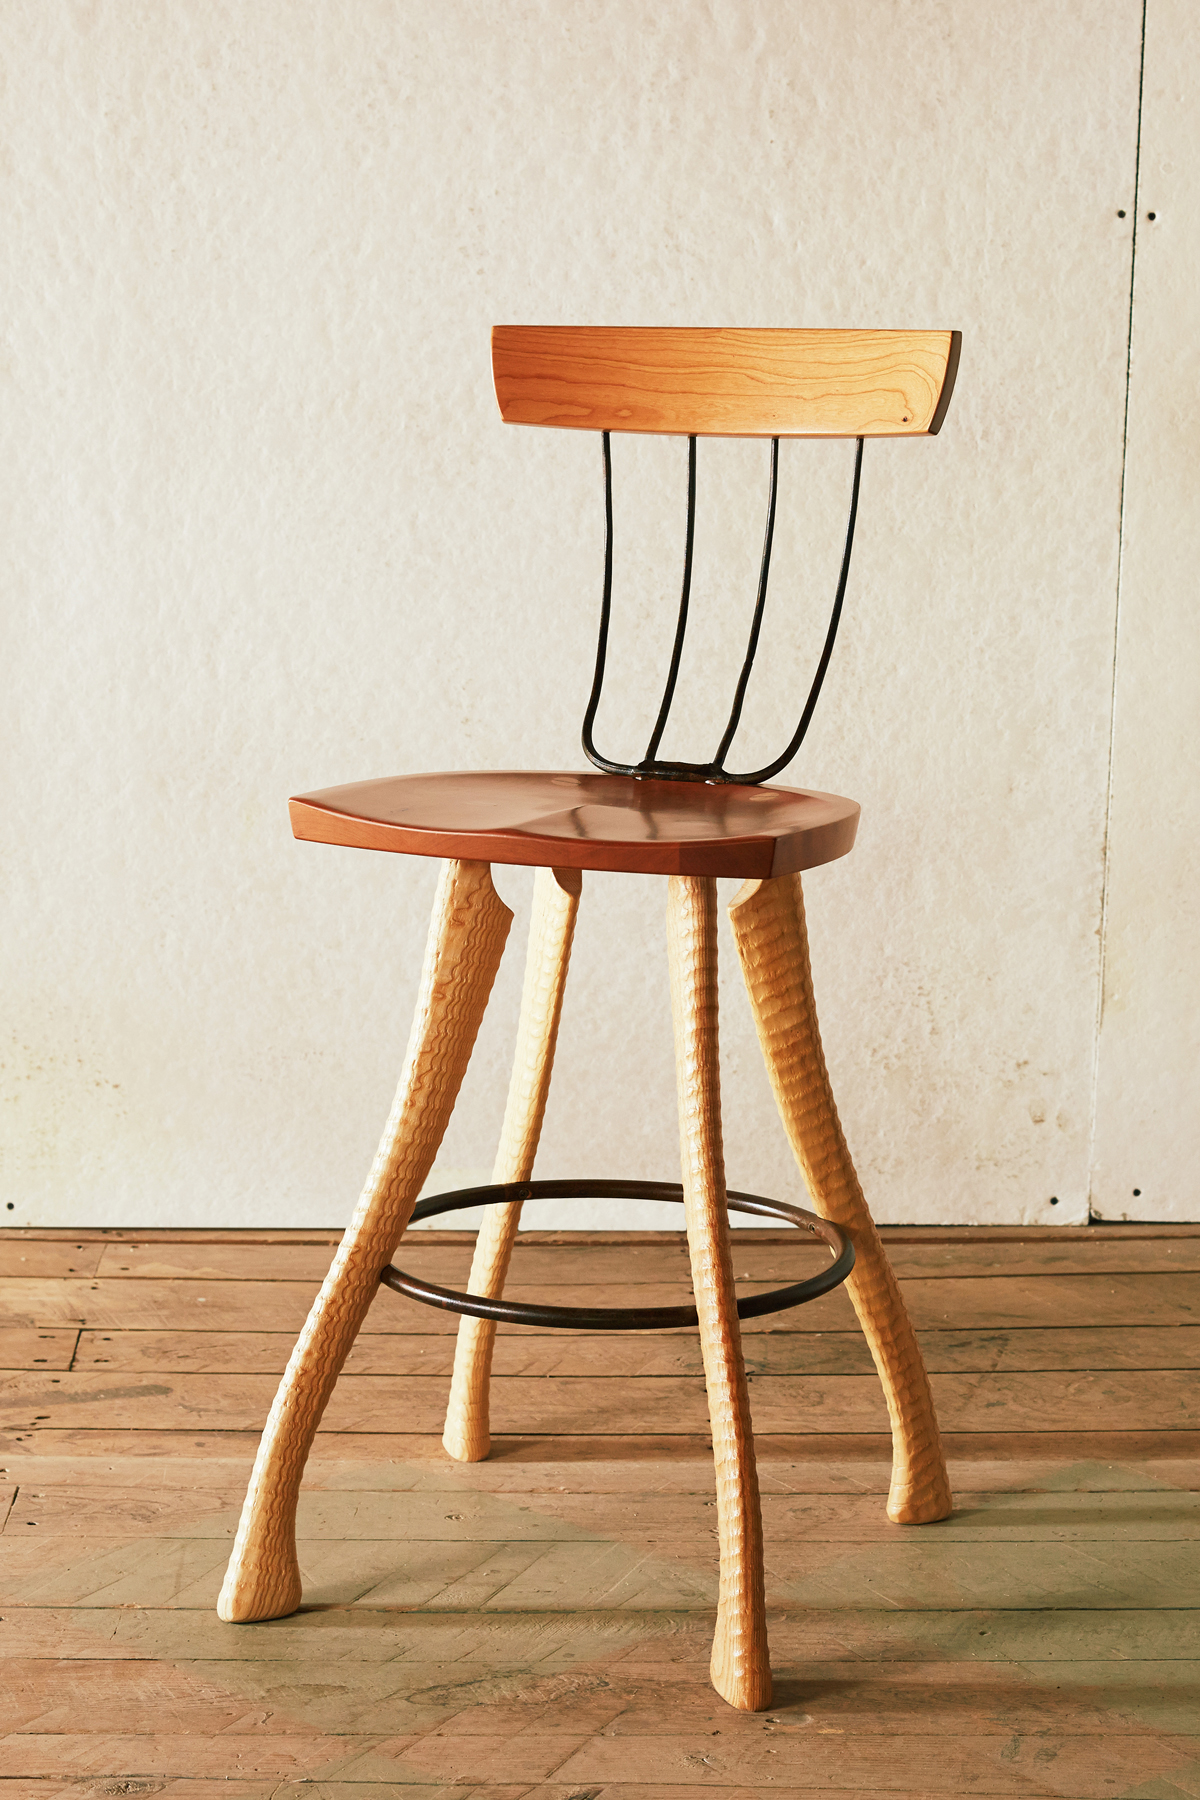 Chair Price Pitchfork Chair Price Varies According To Height And Arm Option